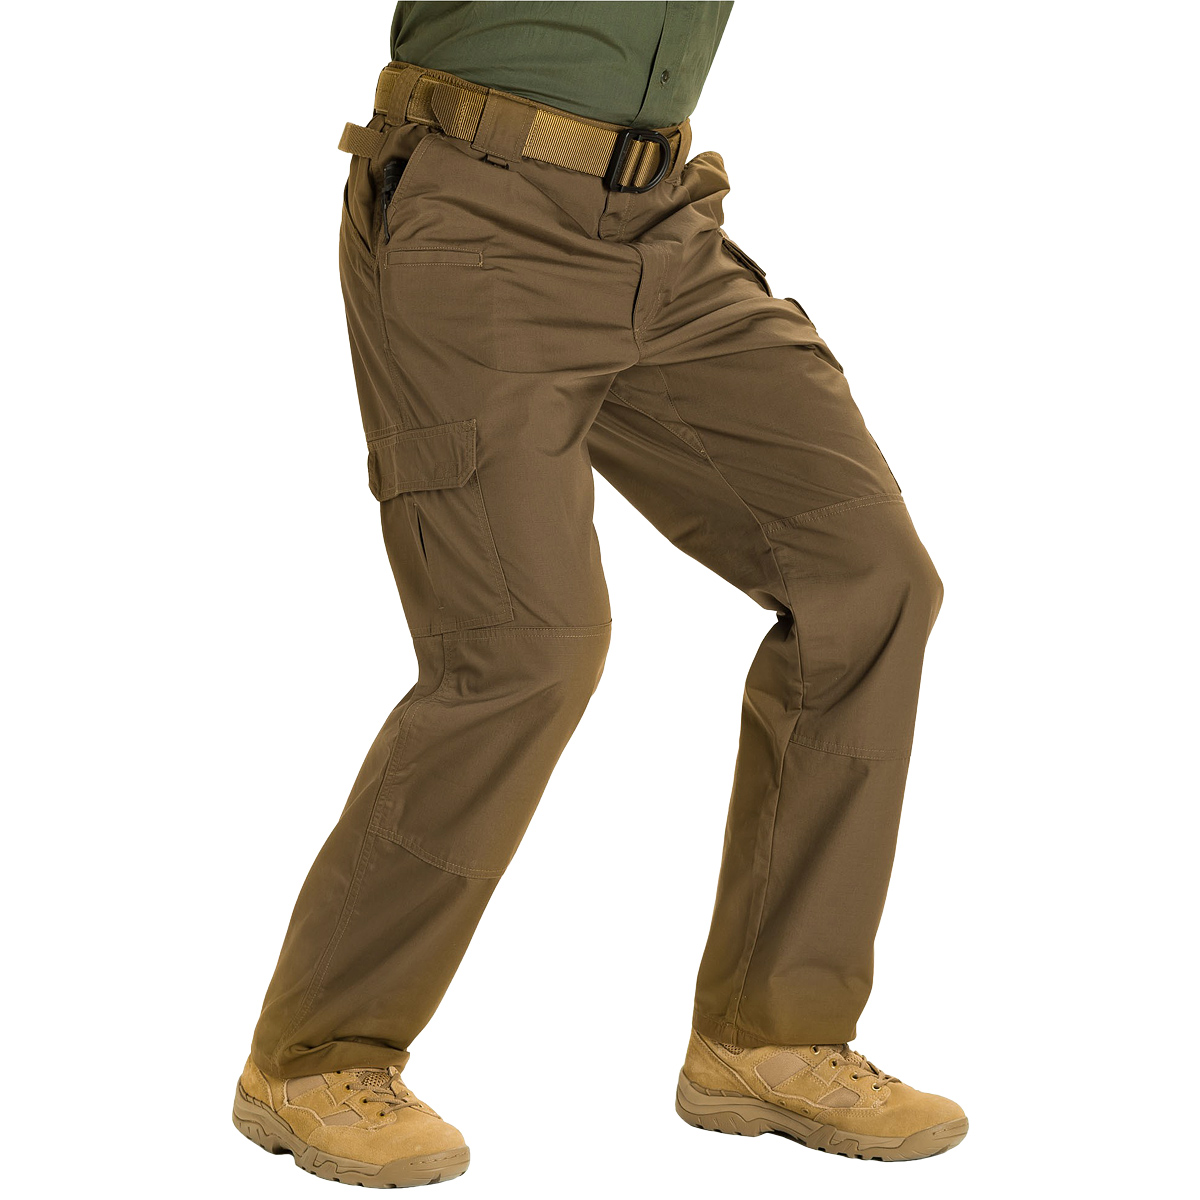 cargo pants brown - Pi Pants